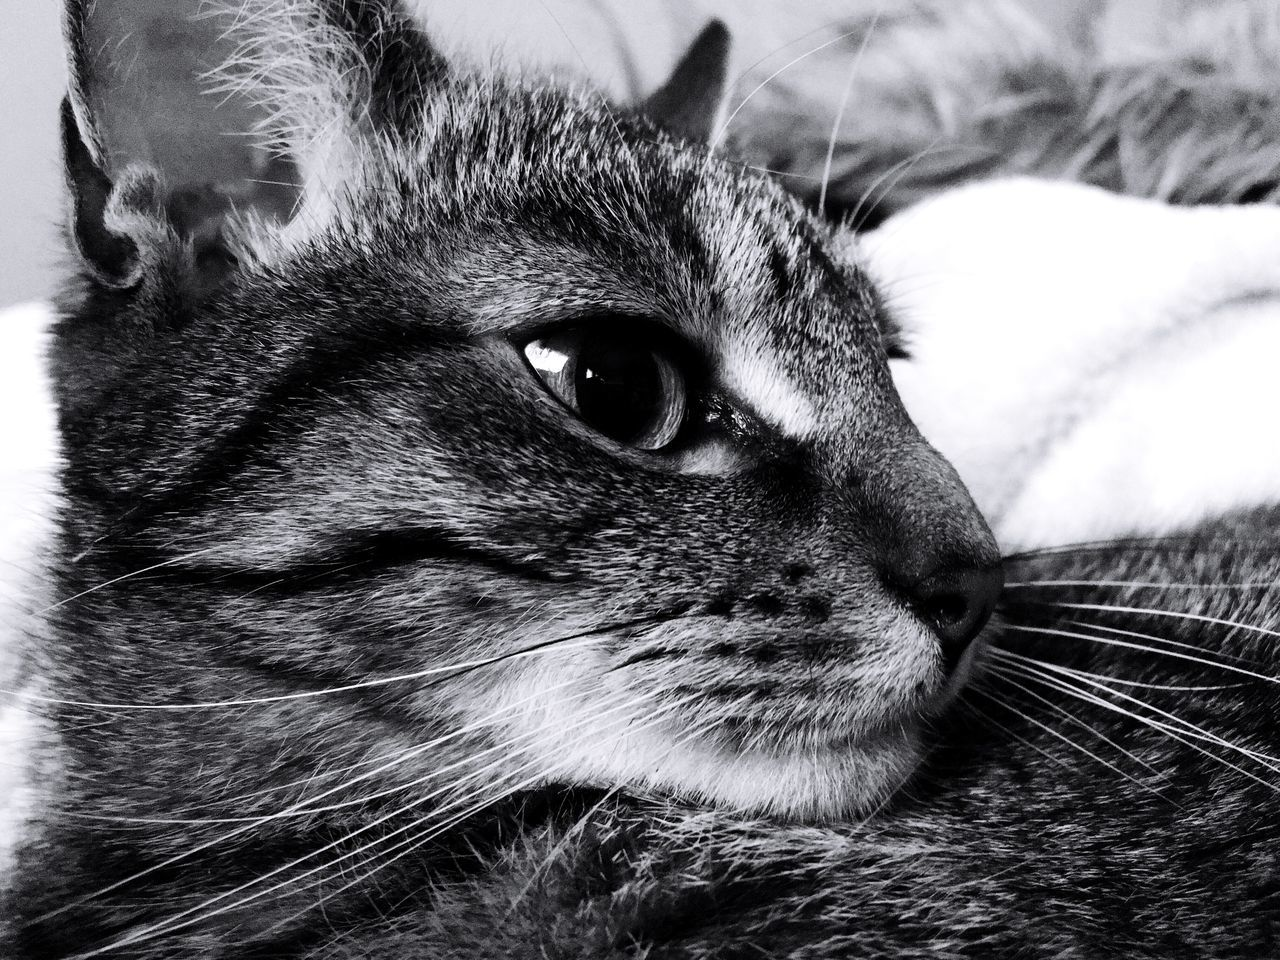 pets, domestic cat, domestic animals, one animal, animal themes, mammal, whisker, feline, close-up, animal head, portrait, indoors, no people, looking at camera, day